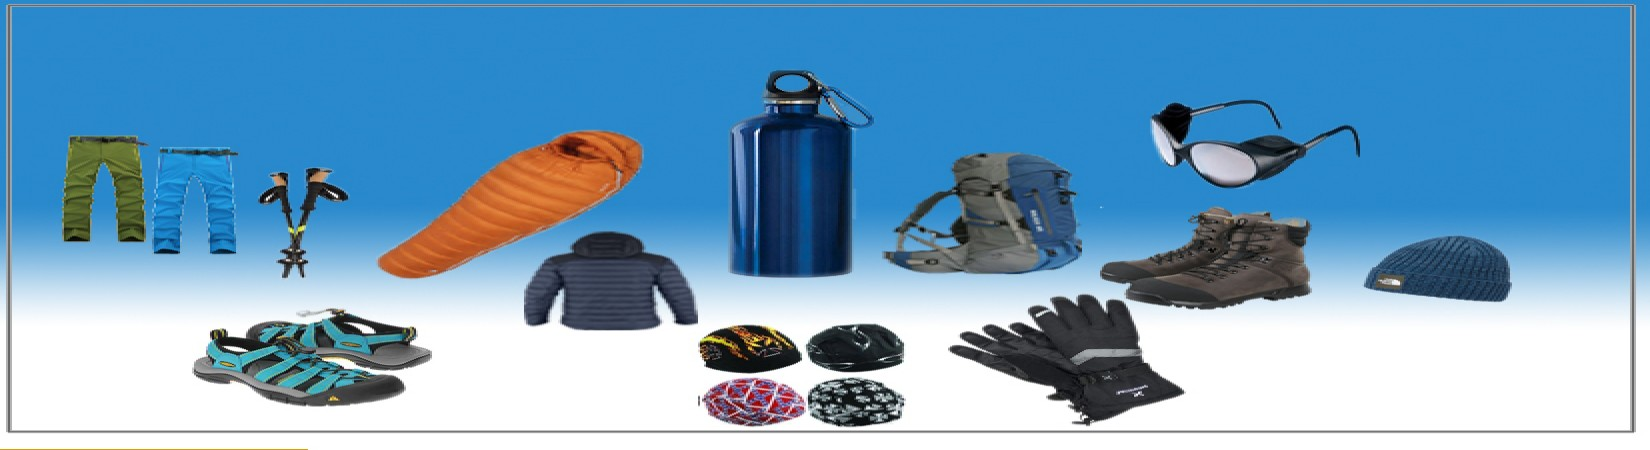 Nepal Trekking Equipment Lists